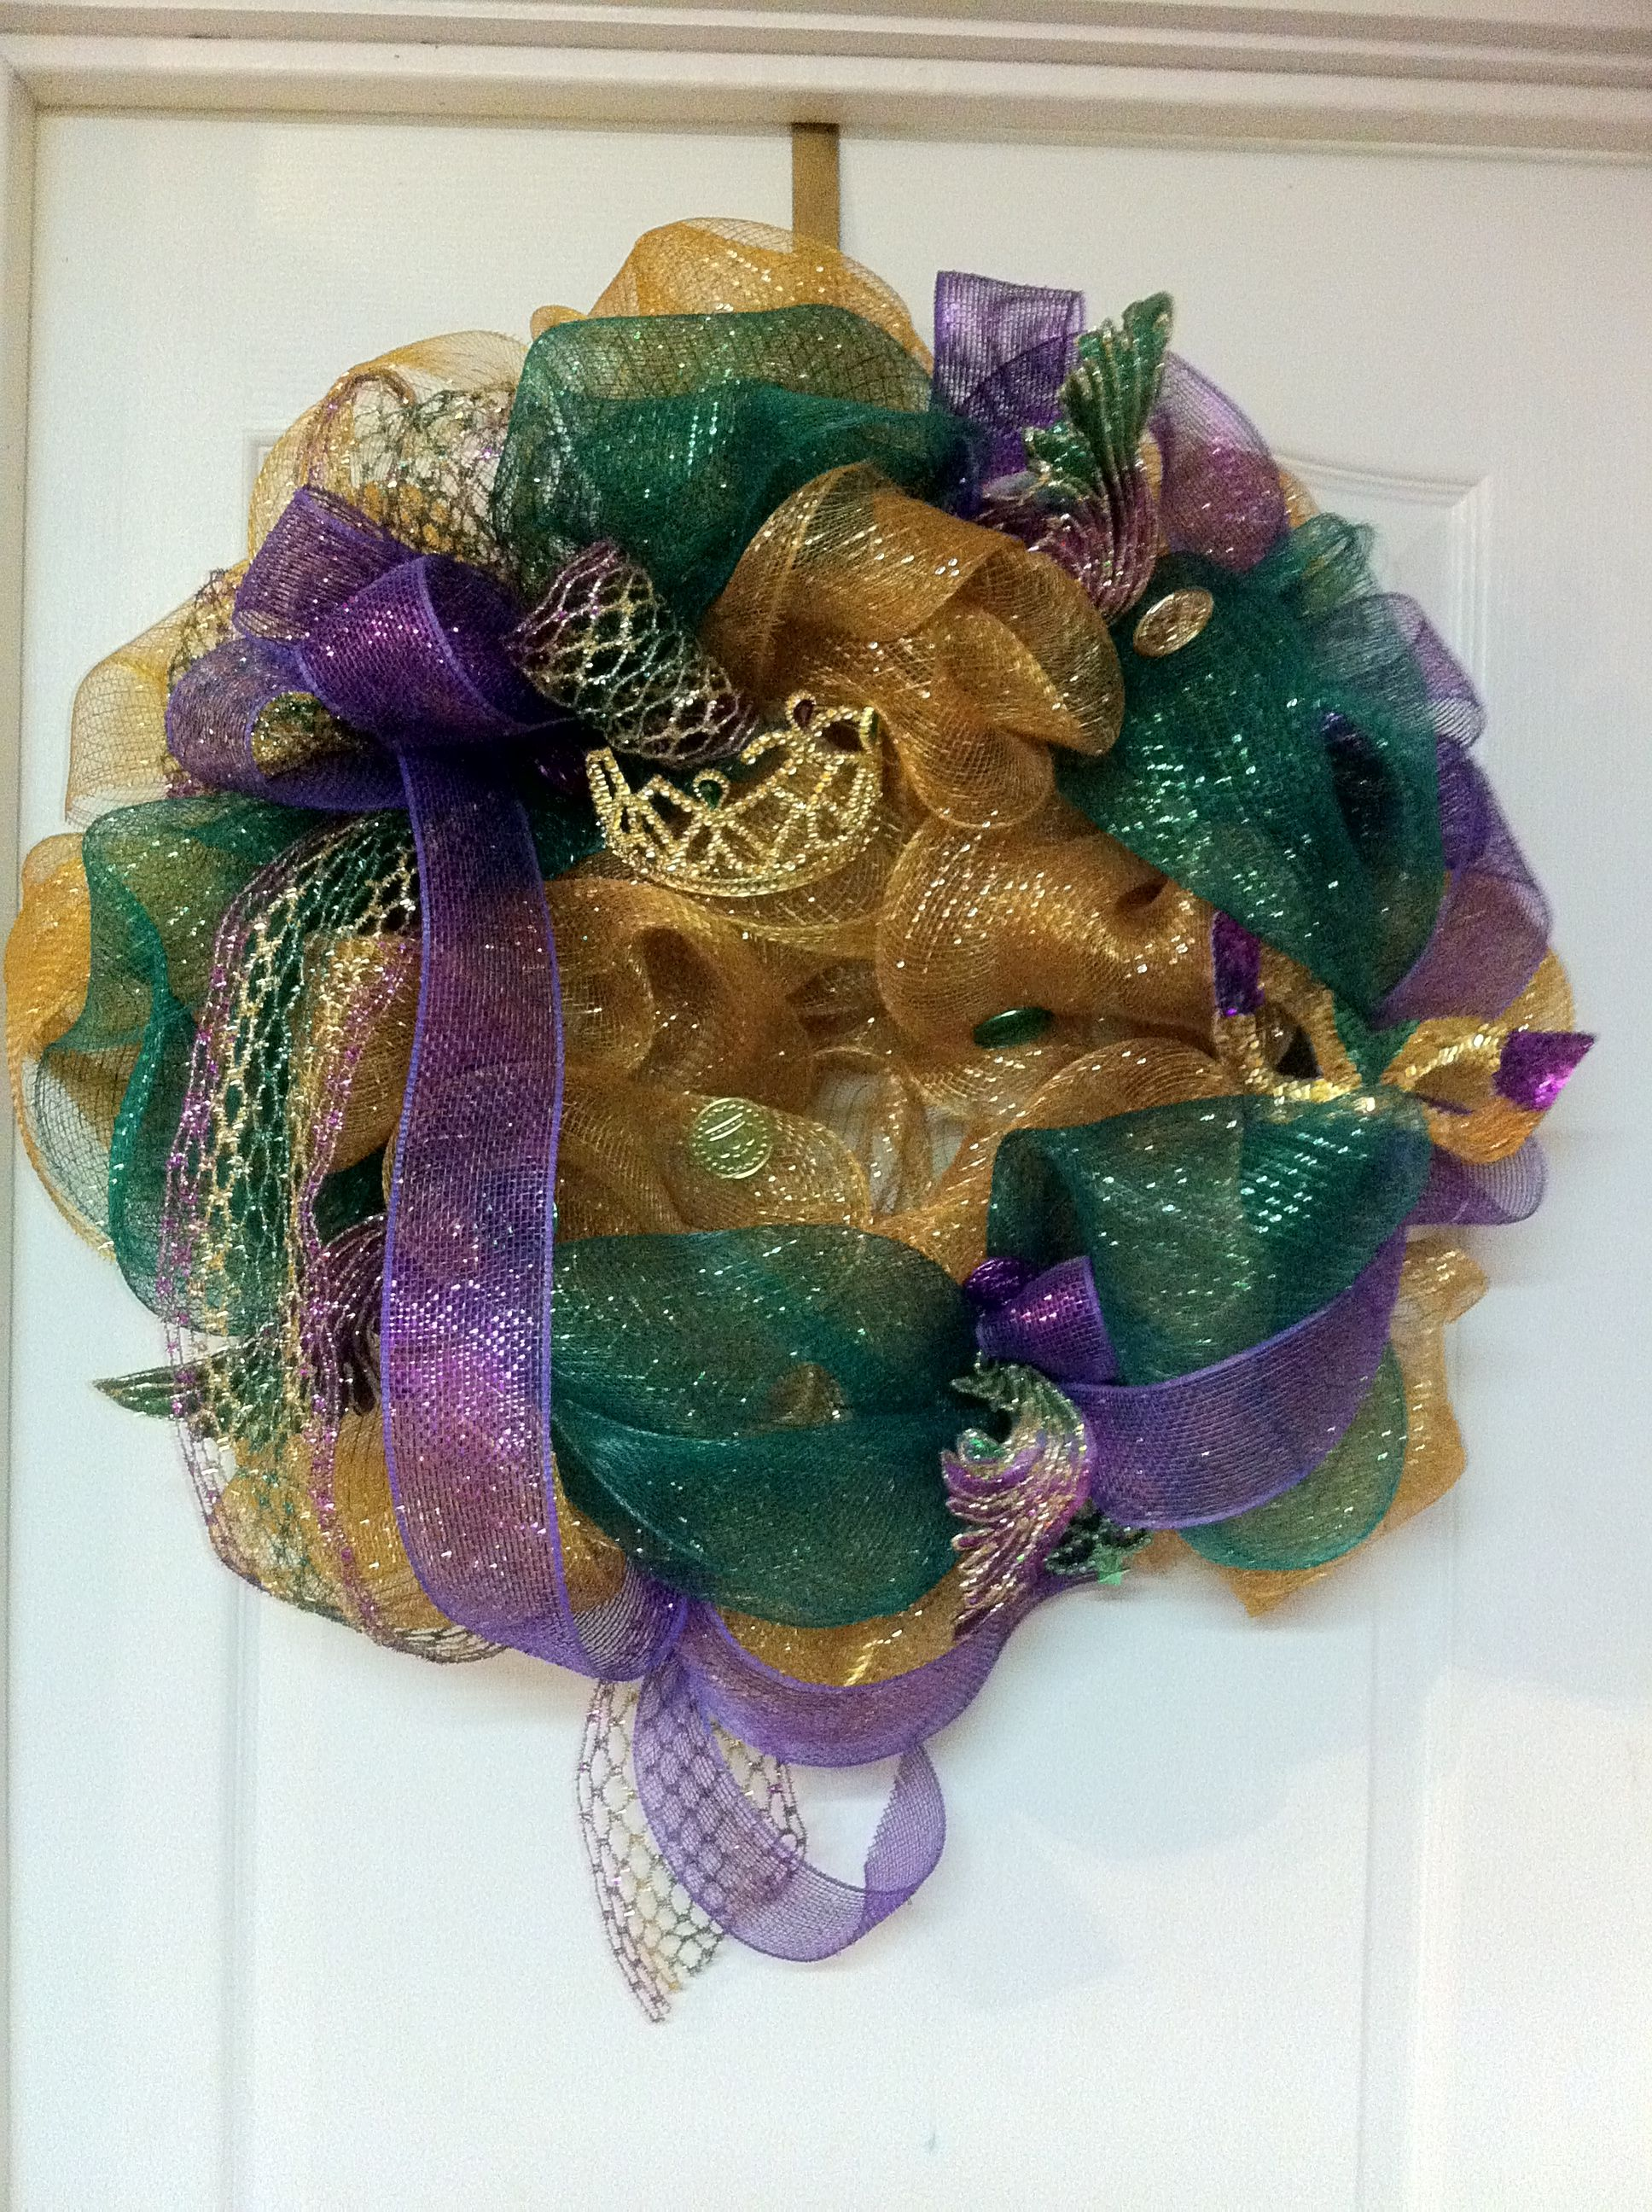 Deco Mesh wreath for Mardi Gras